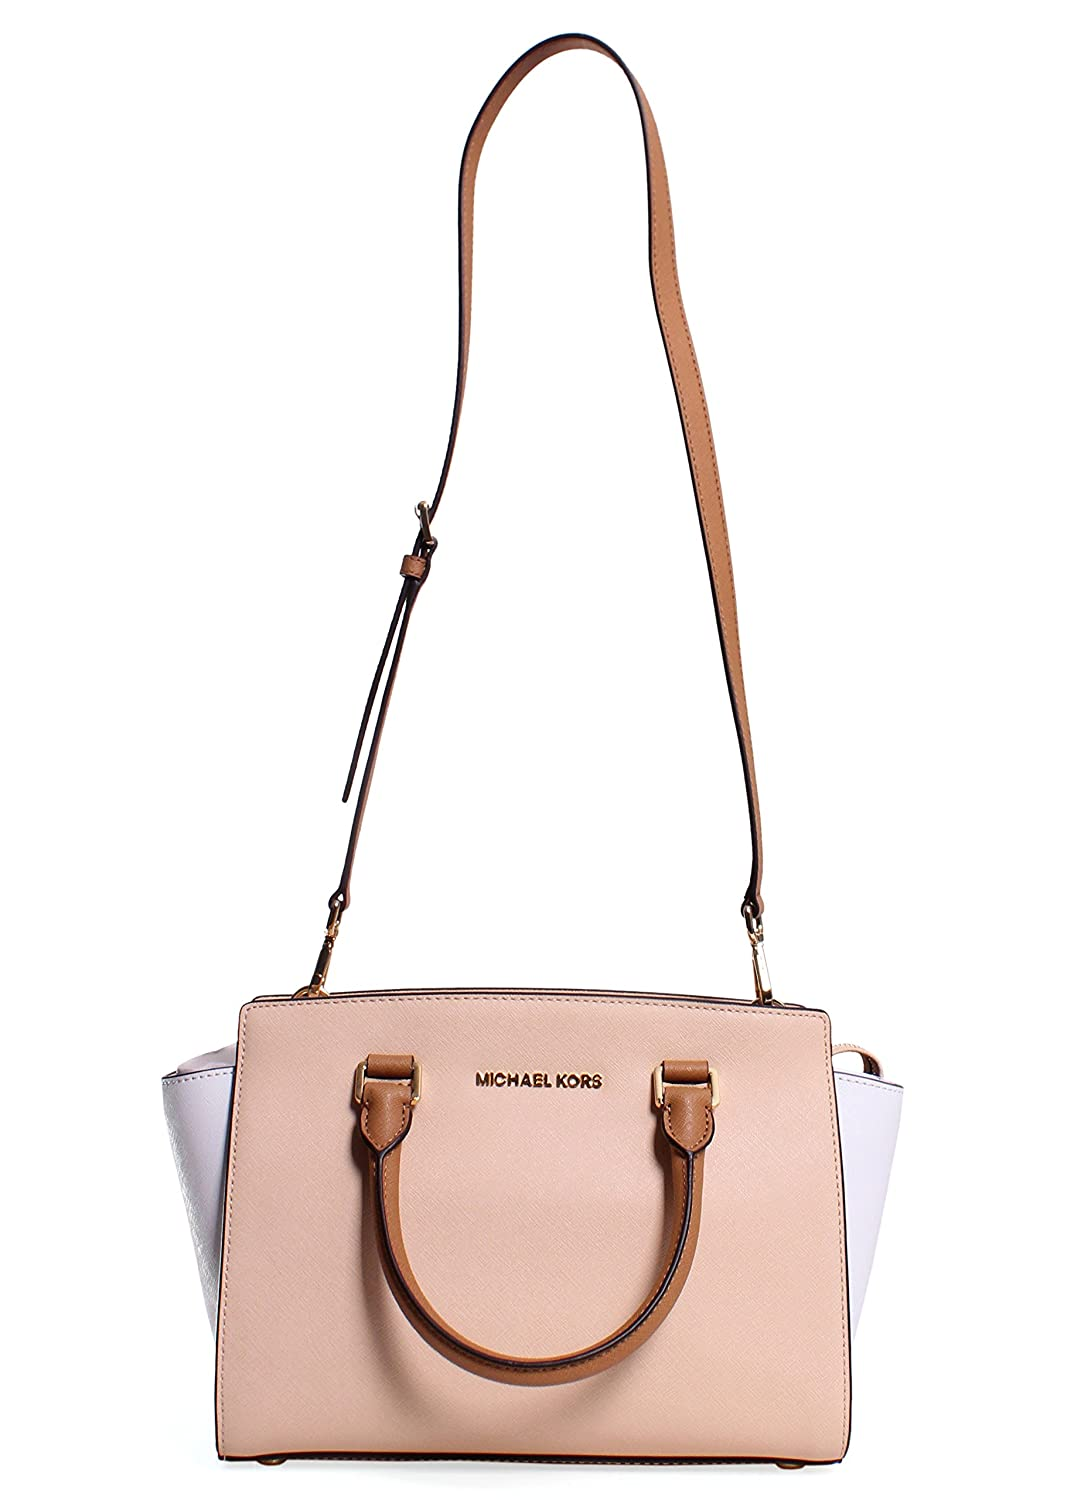 ec91357568f0c6 Michael Kors Selma Medium Color-block Saffiano Leather Satchel Nude/white/peanut:  Handbags: Amazon.com